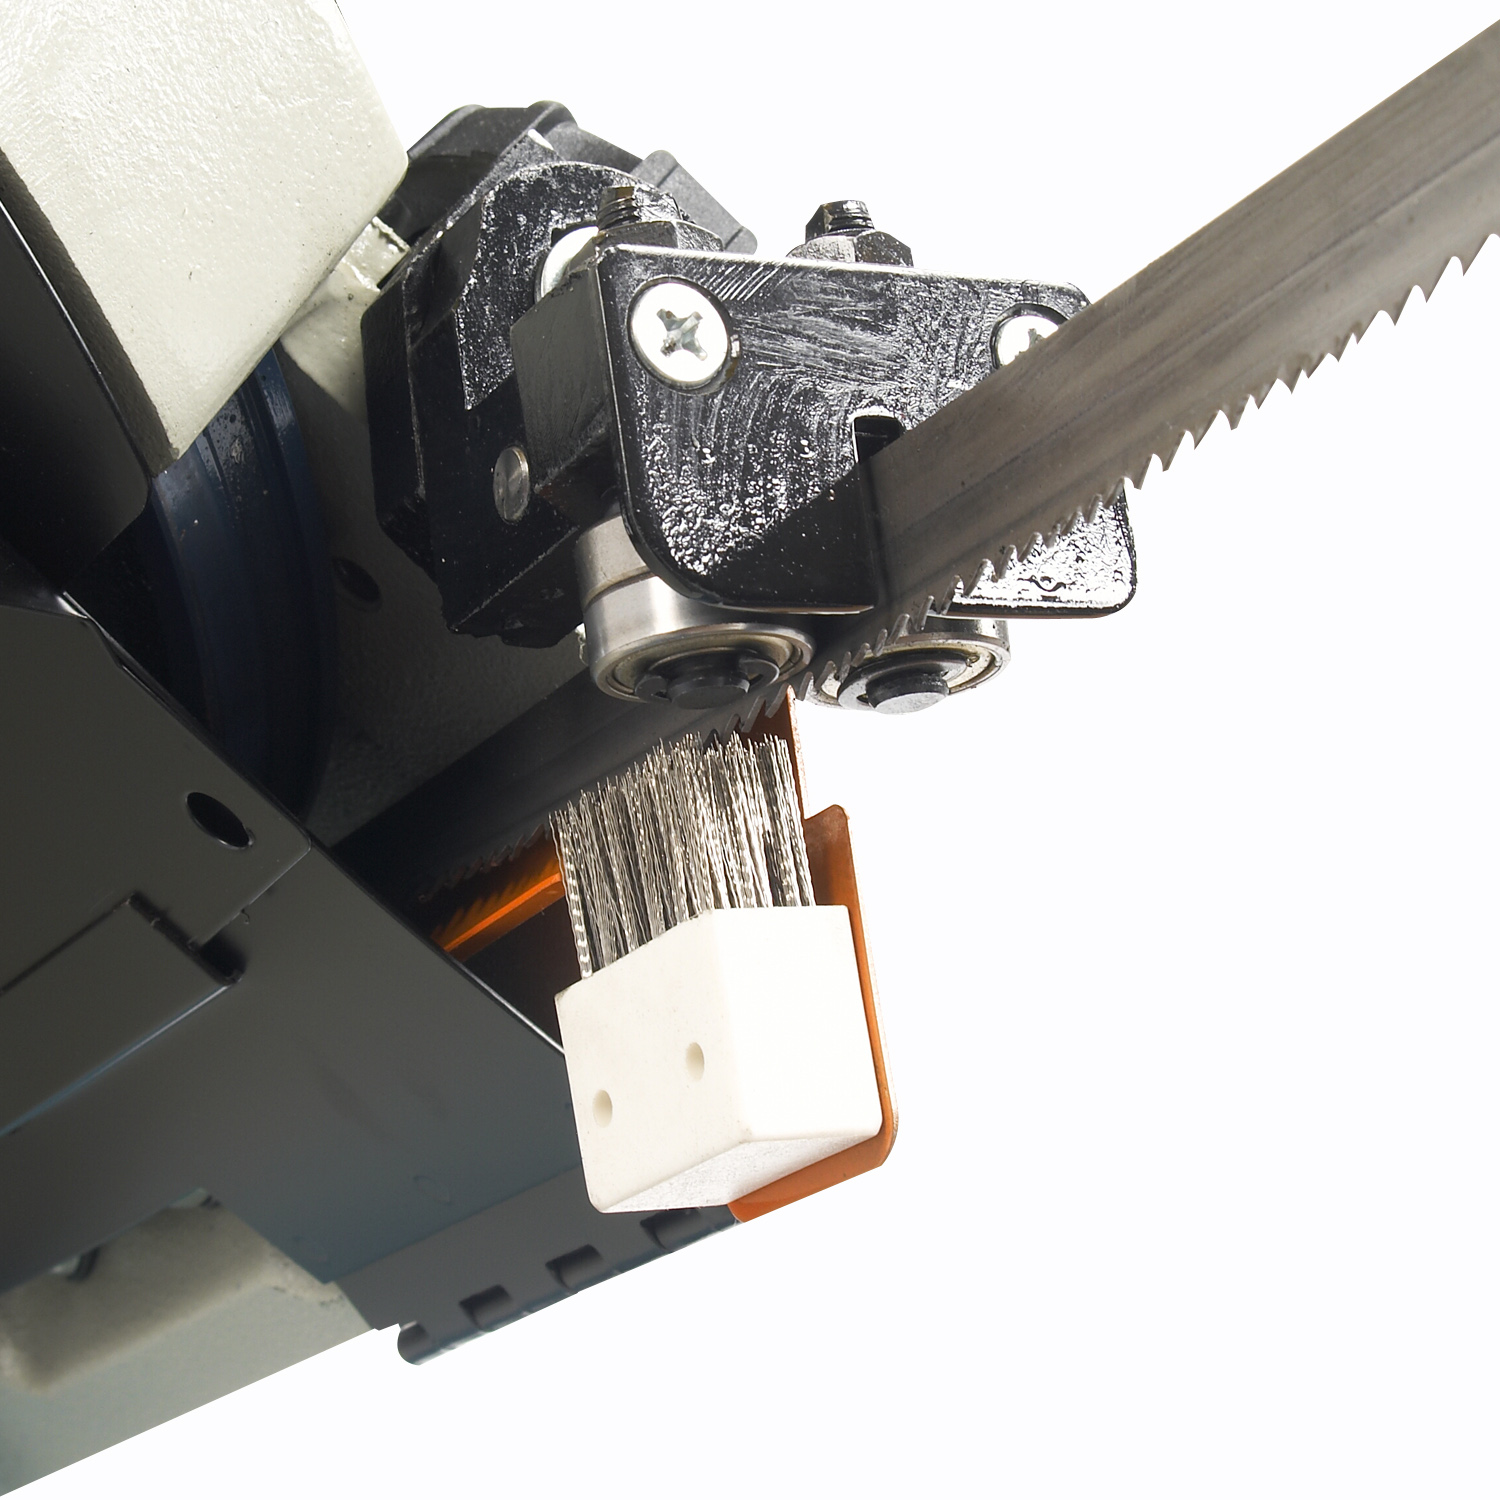 how to buy metal bandsaw blades